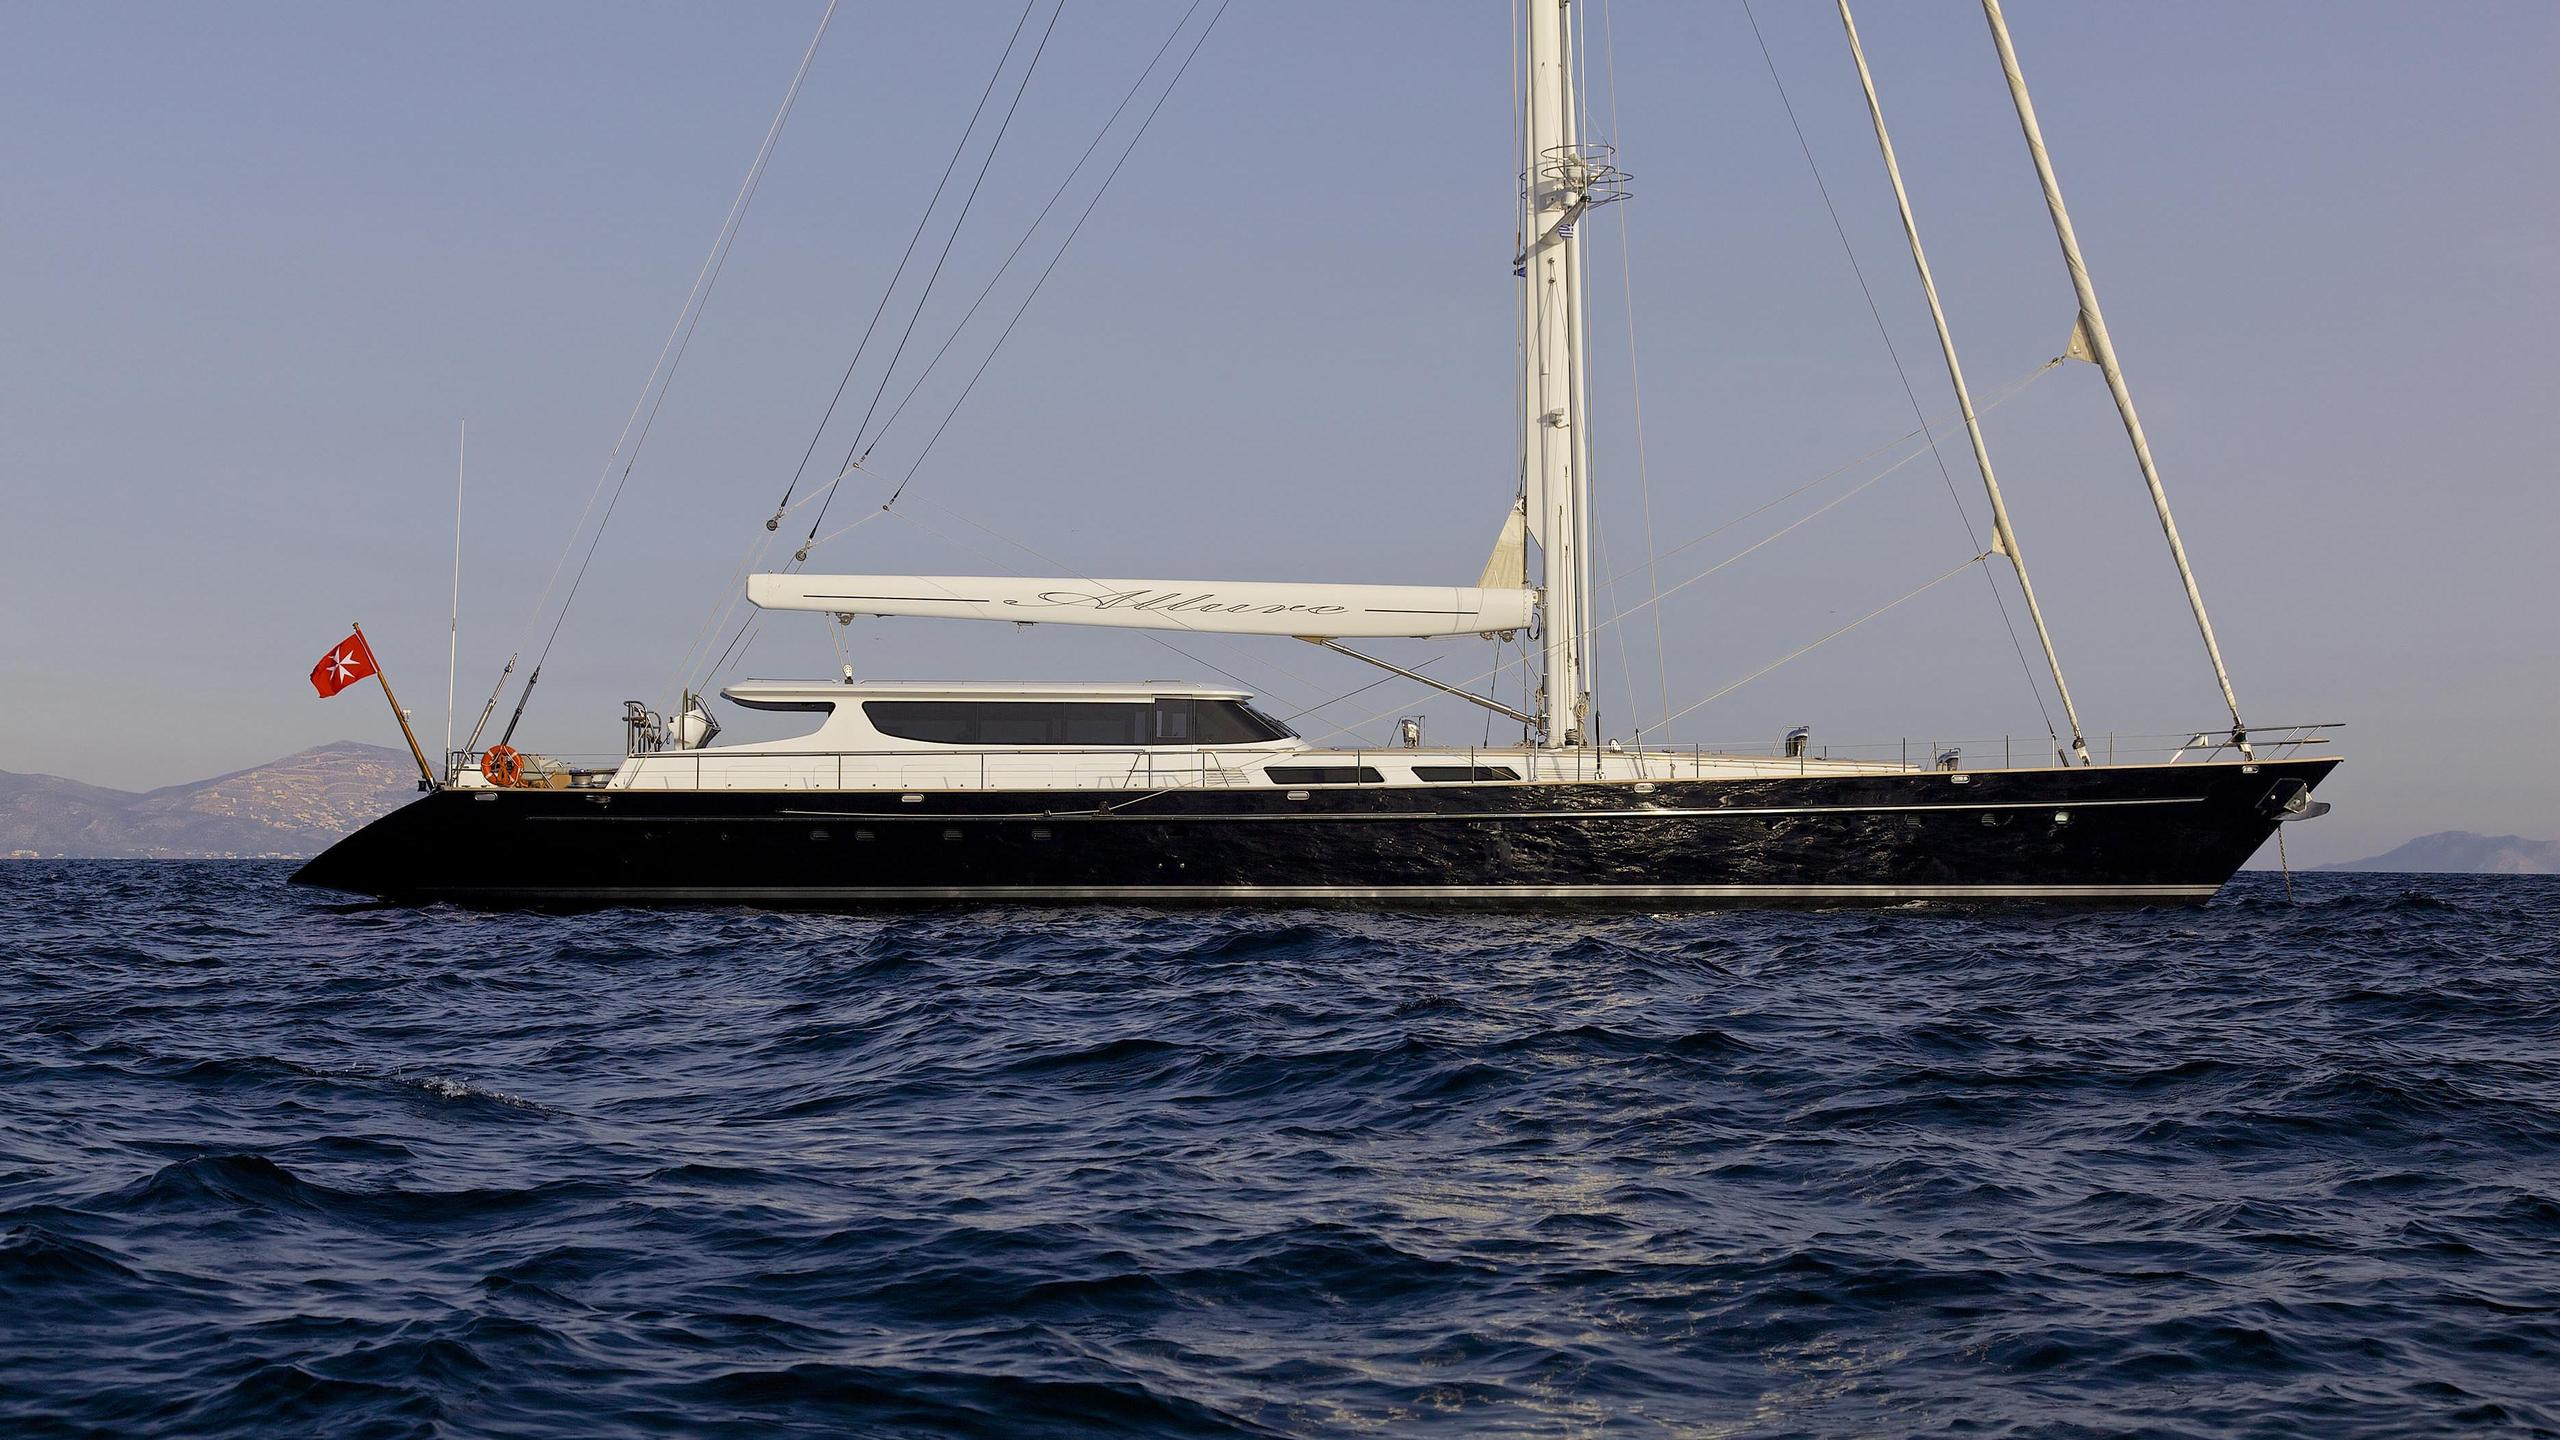 allure-yacht-at-anchor